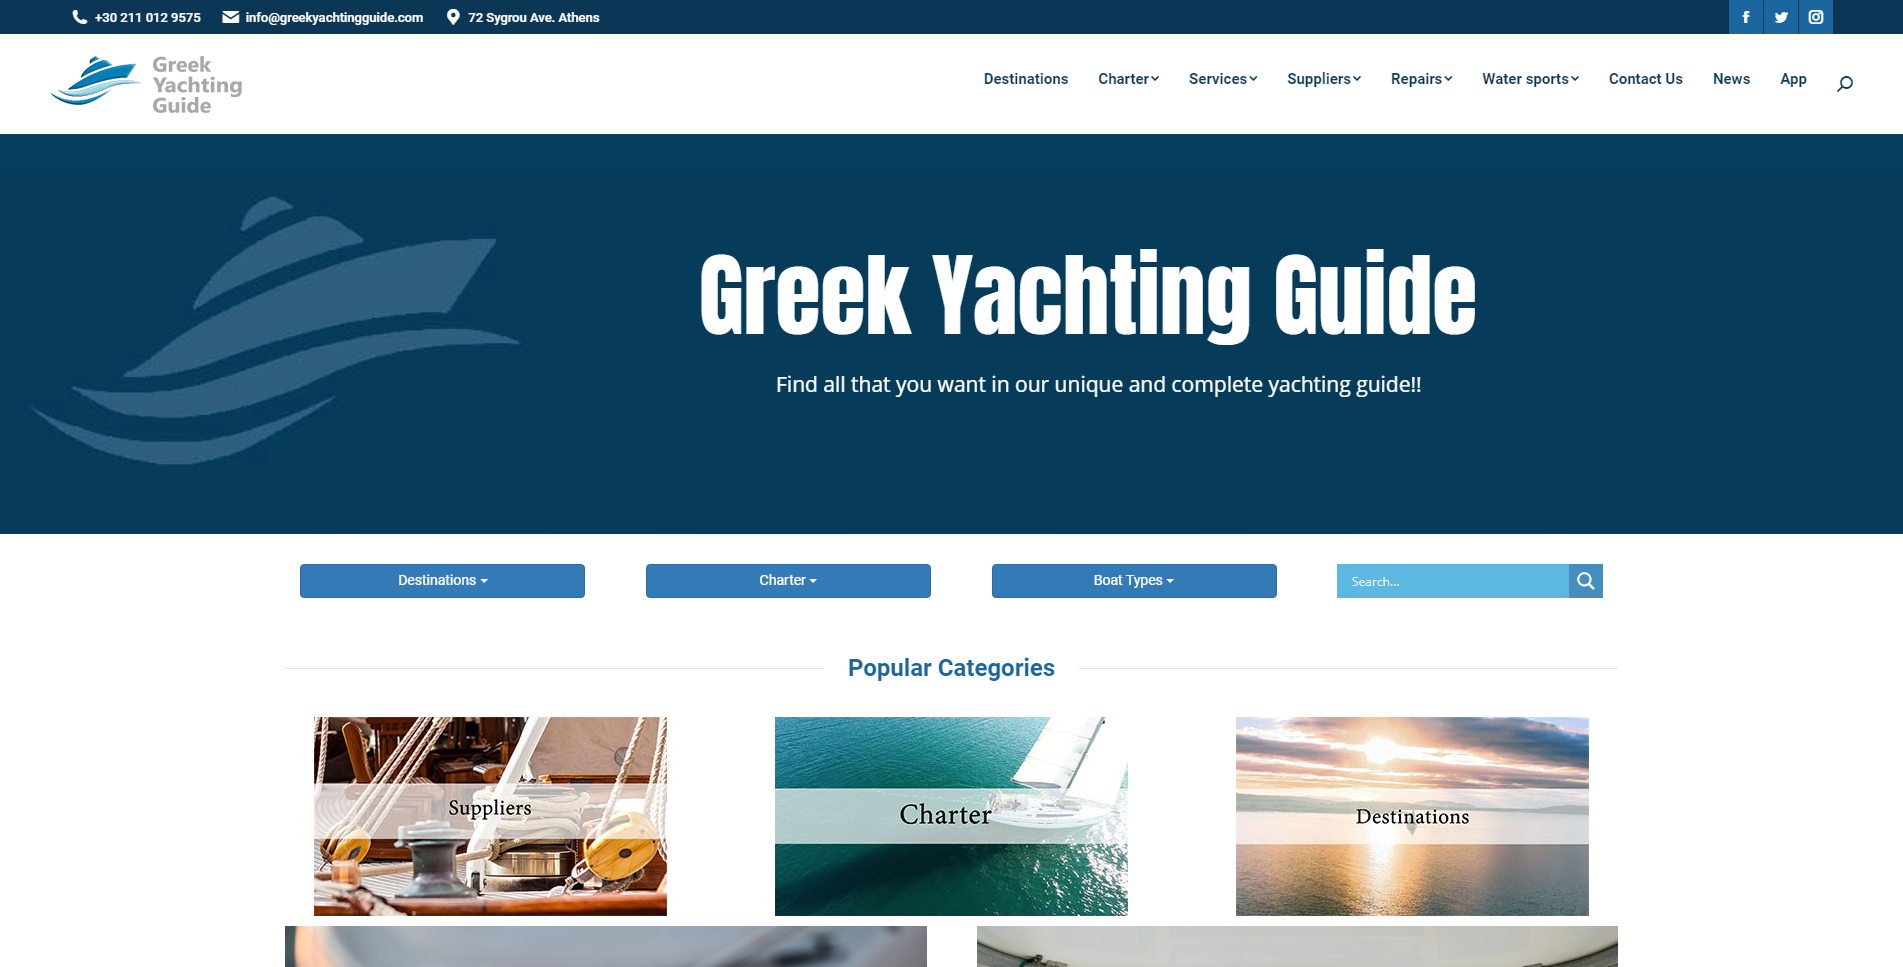 https://mact.gr/wp-content/uploads/2021/08/greekyachting_guide.png